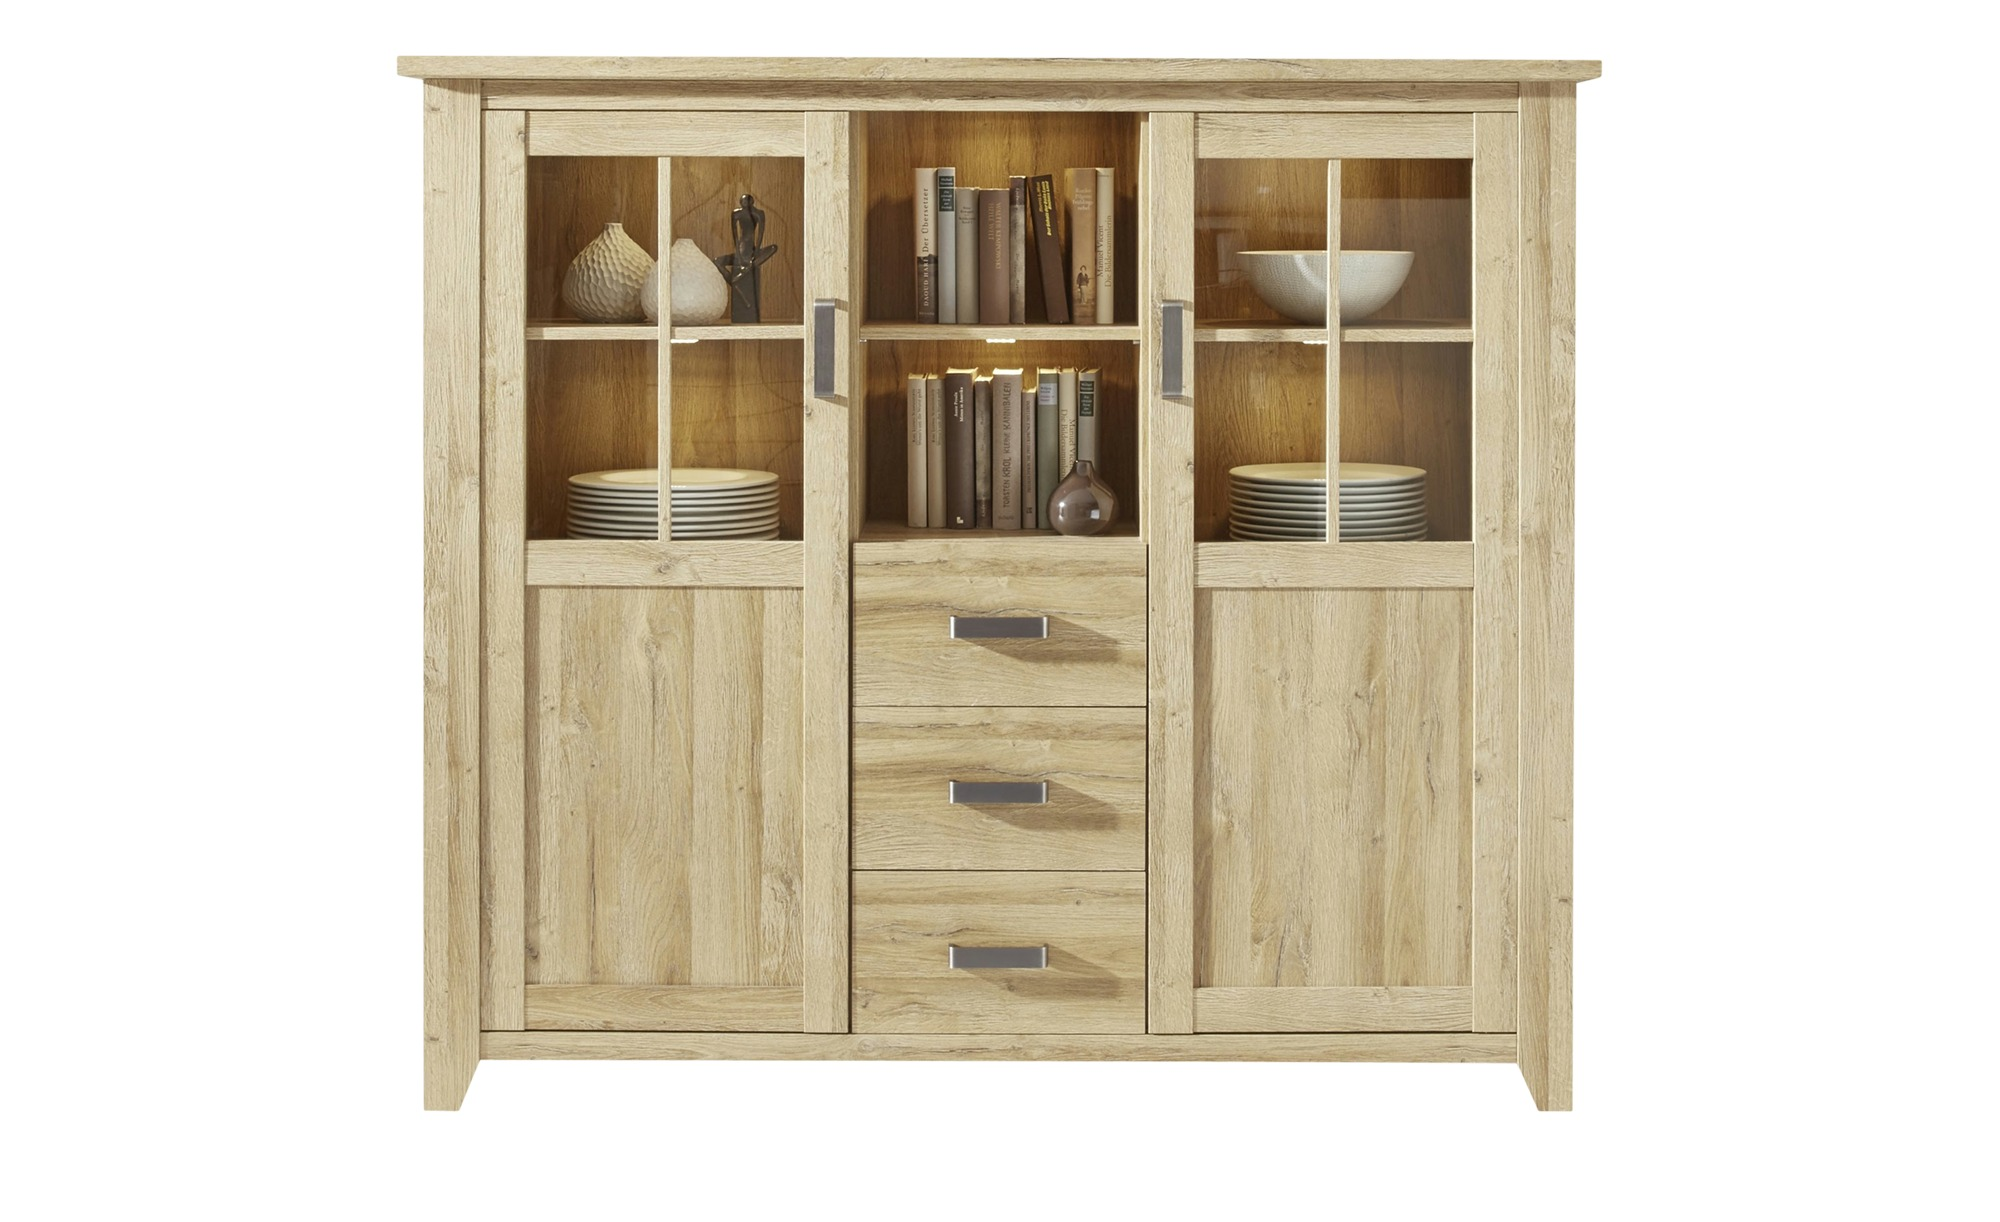 Highboard  Cosenza ¦ holzfarben ¦ Maße (cm): B: 163 H: 145 T: 42 Kommoden & Sideboards > Highboards - Höffner